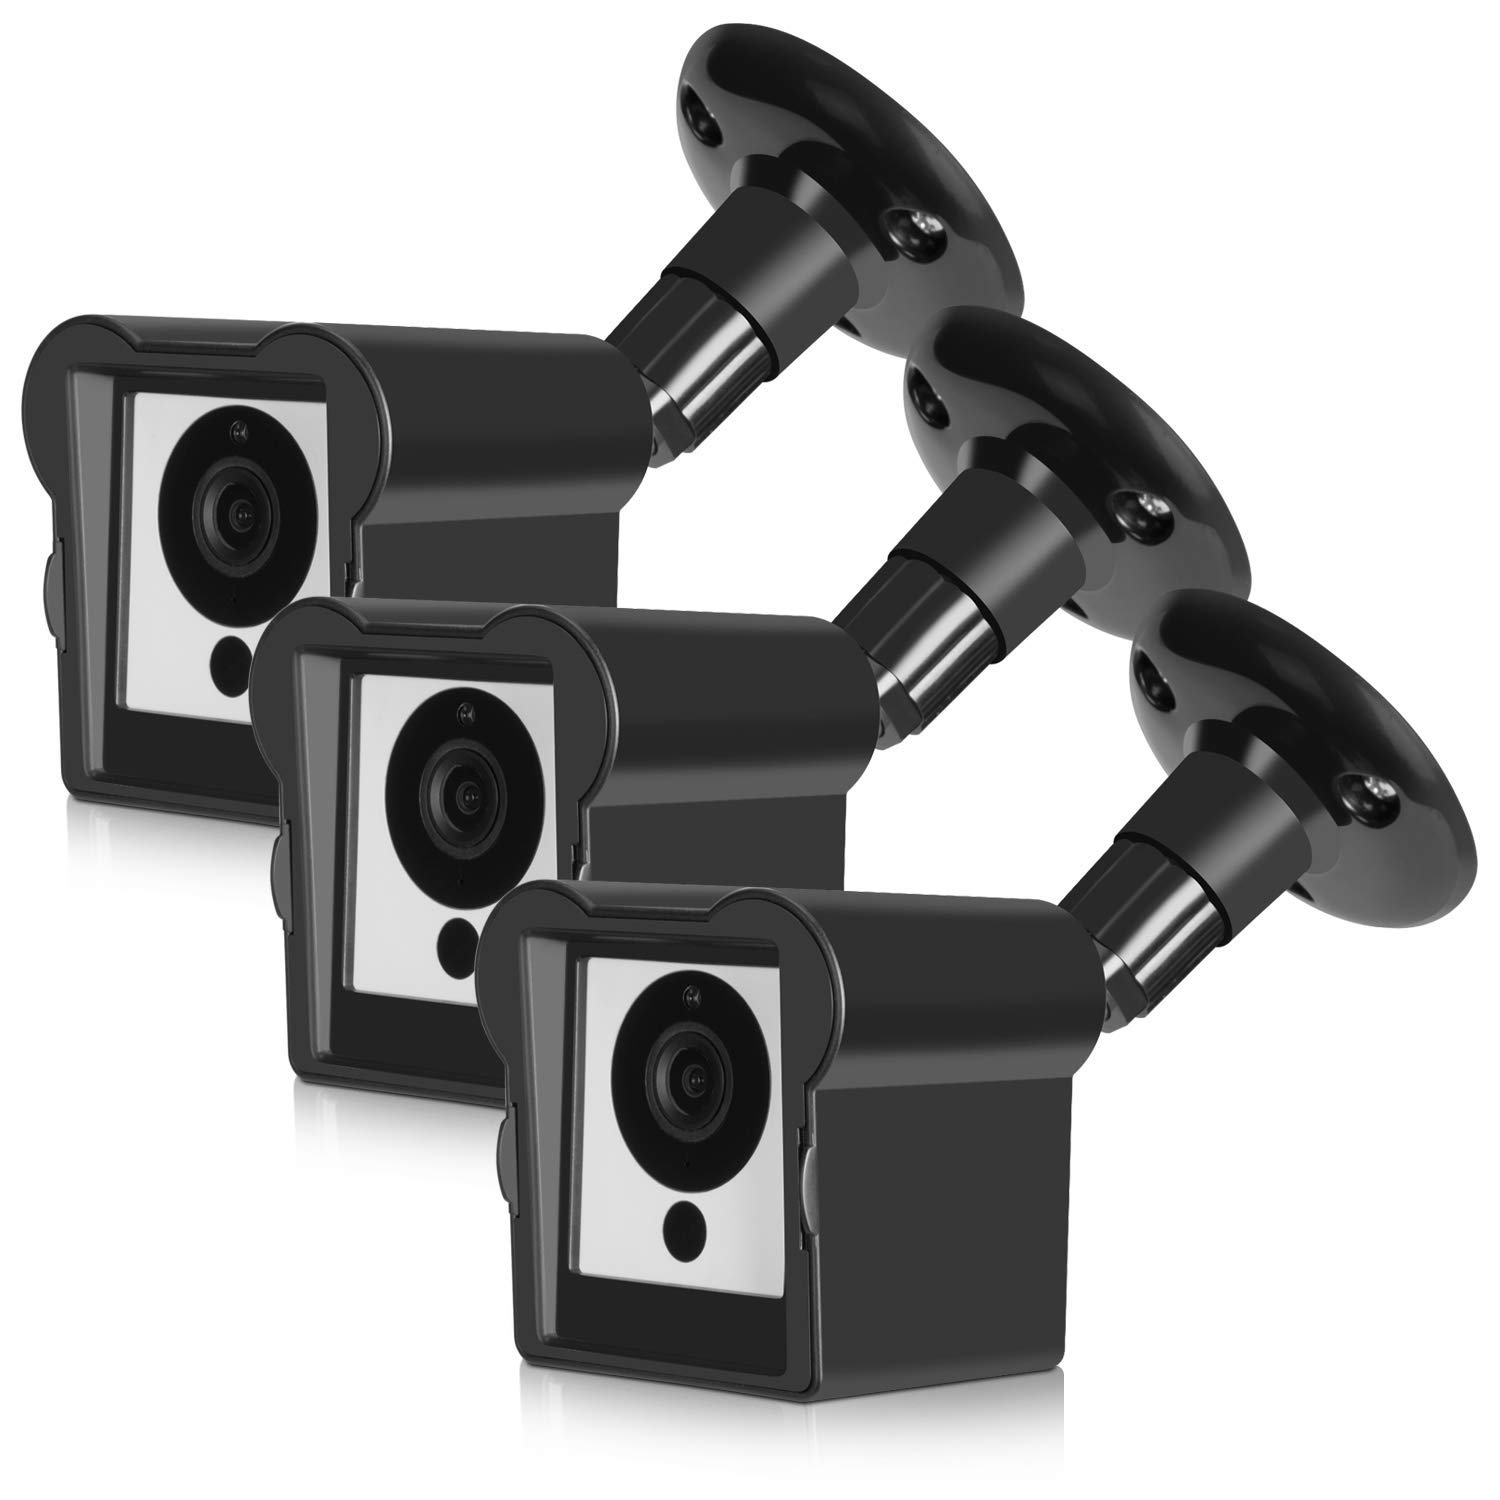 Wall Mount Bracket for Wyze Camera 3 pcs 360 Degree Indoor